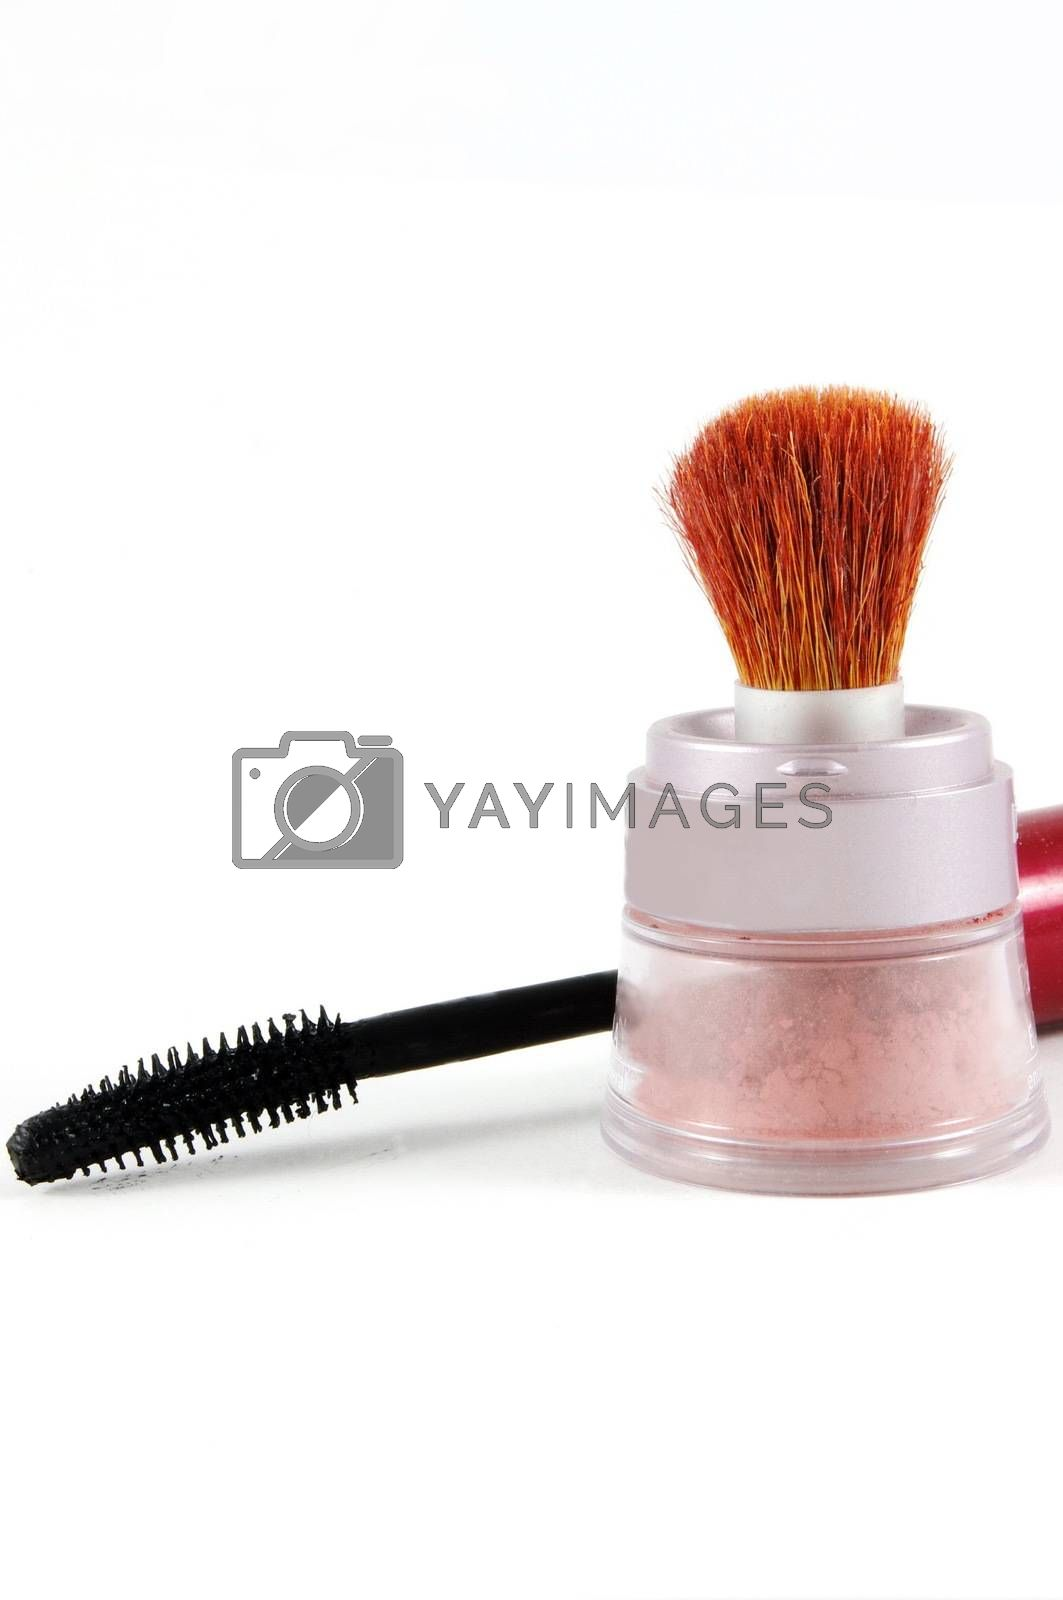 Make up and mascara brush over the white surface